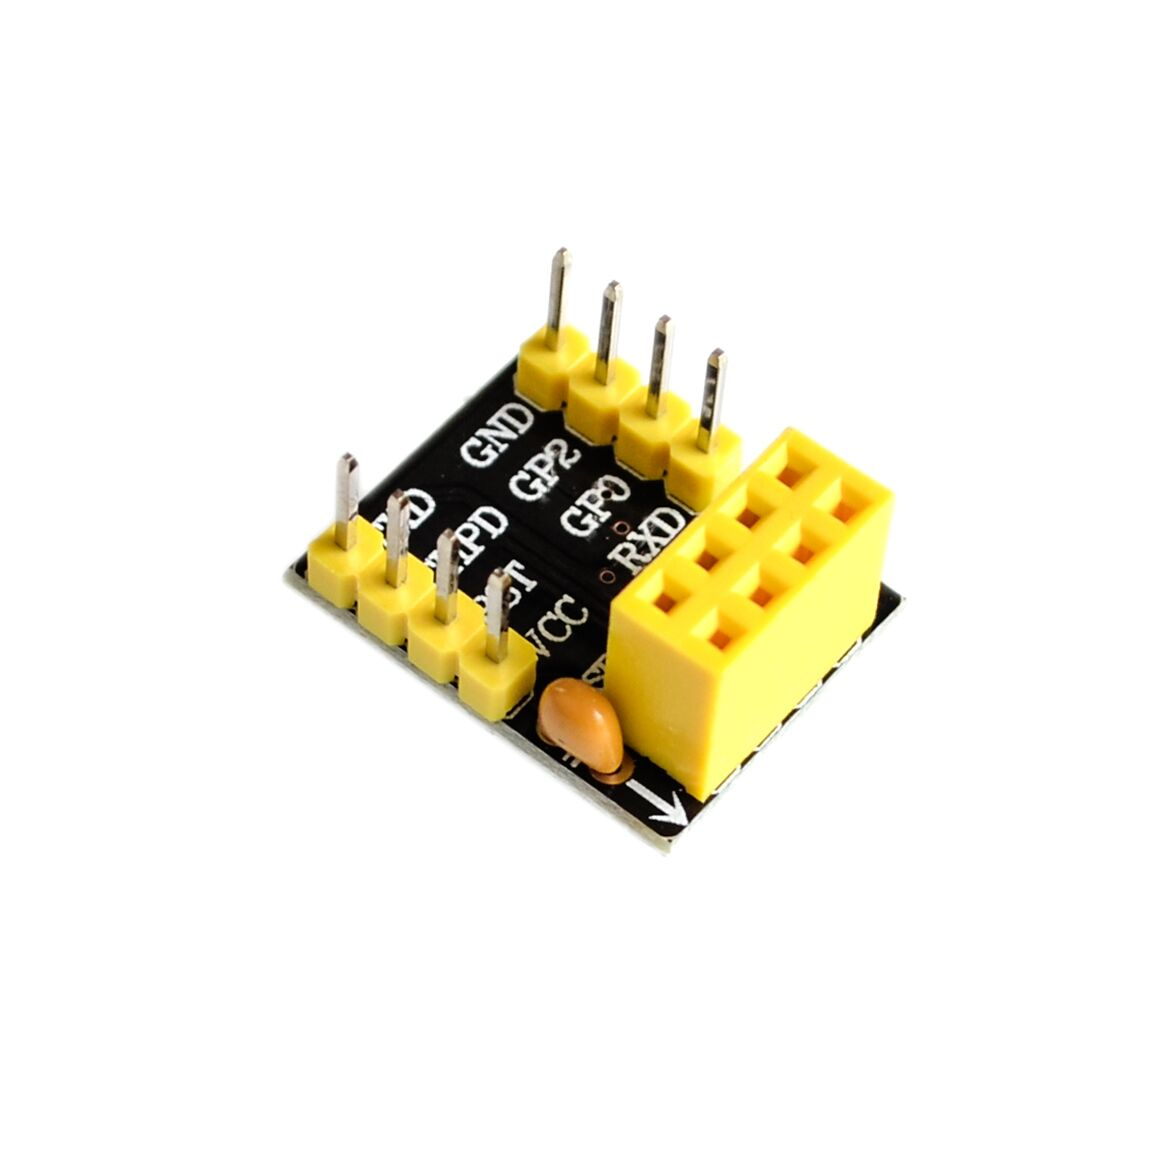 USB to <font><b>ESP8266</b></font> WIFI module ESP-01 ESP-01S Remote Serial Port WIFI Sensor Transceiver Wireless <font><b>Board</b></font> ESP01S Breakout PCB <font><b>Adapter</b></font> image